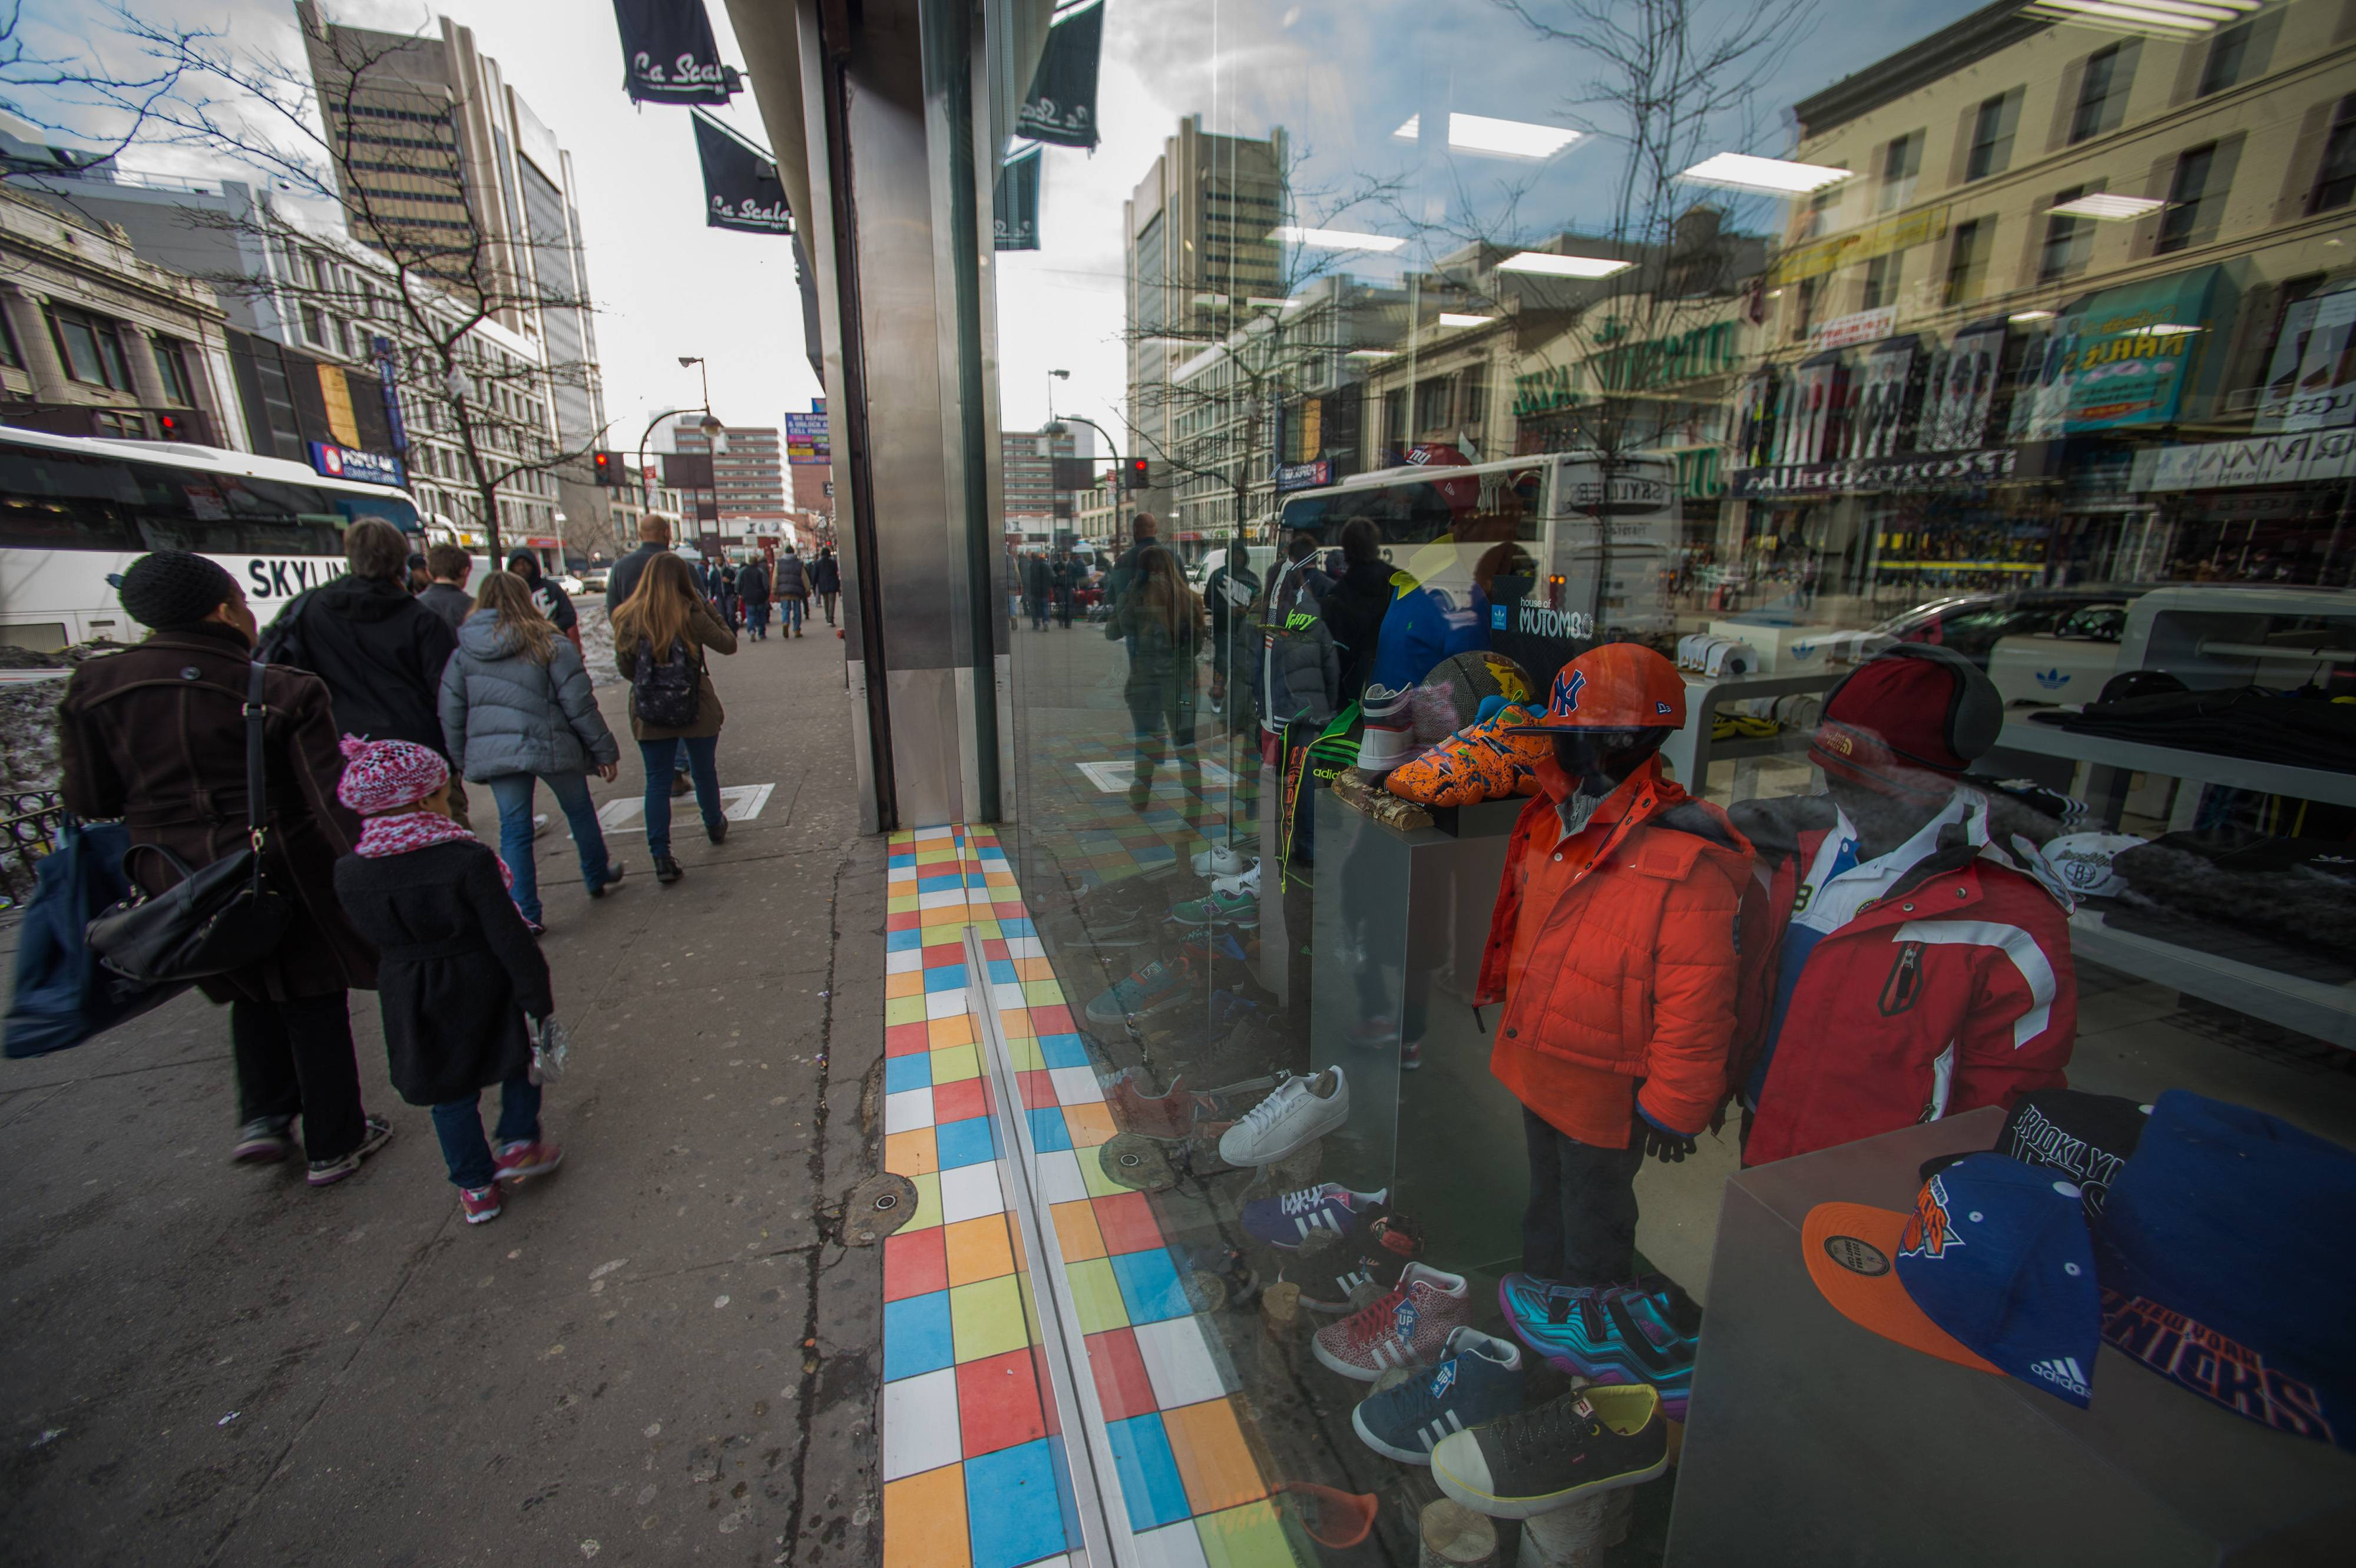 Pedestrians walk past the display window of a store in the Harlem neighborhood of New York, U.S. Consumer confidence in the U.S. fell more than forecast in February as Americans grew more pessimistic about the outlook for the economy and employment.